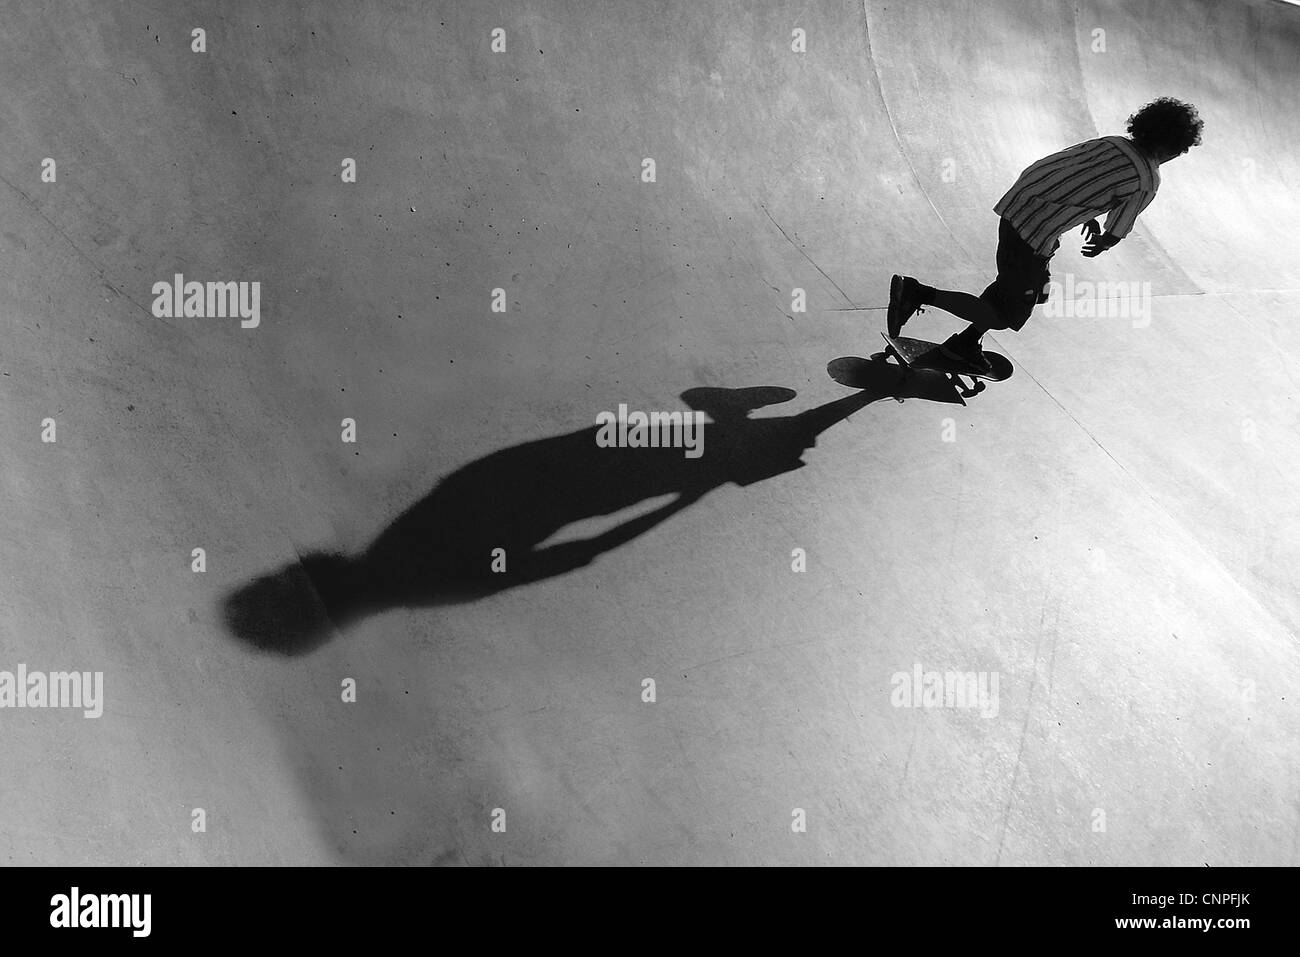 Skateboarder skating the bowl, - Stock Image